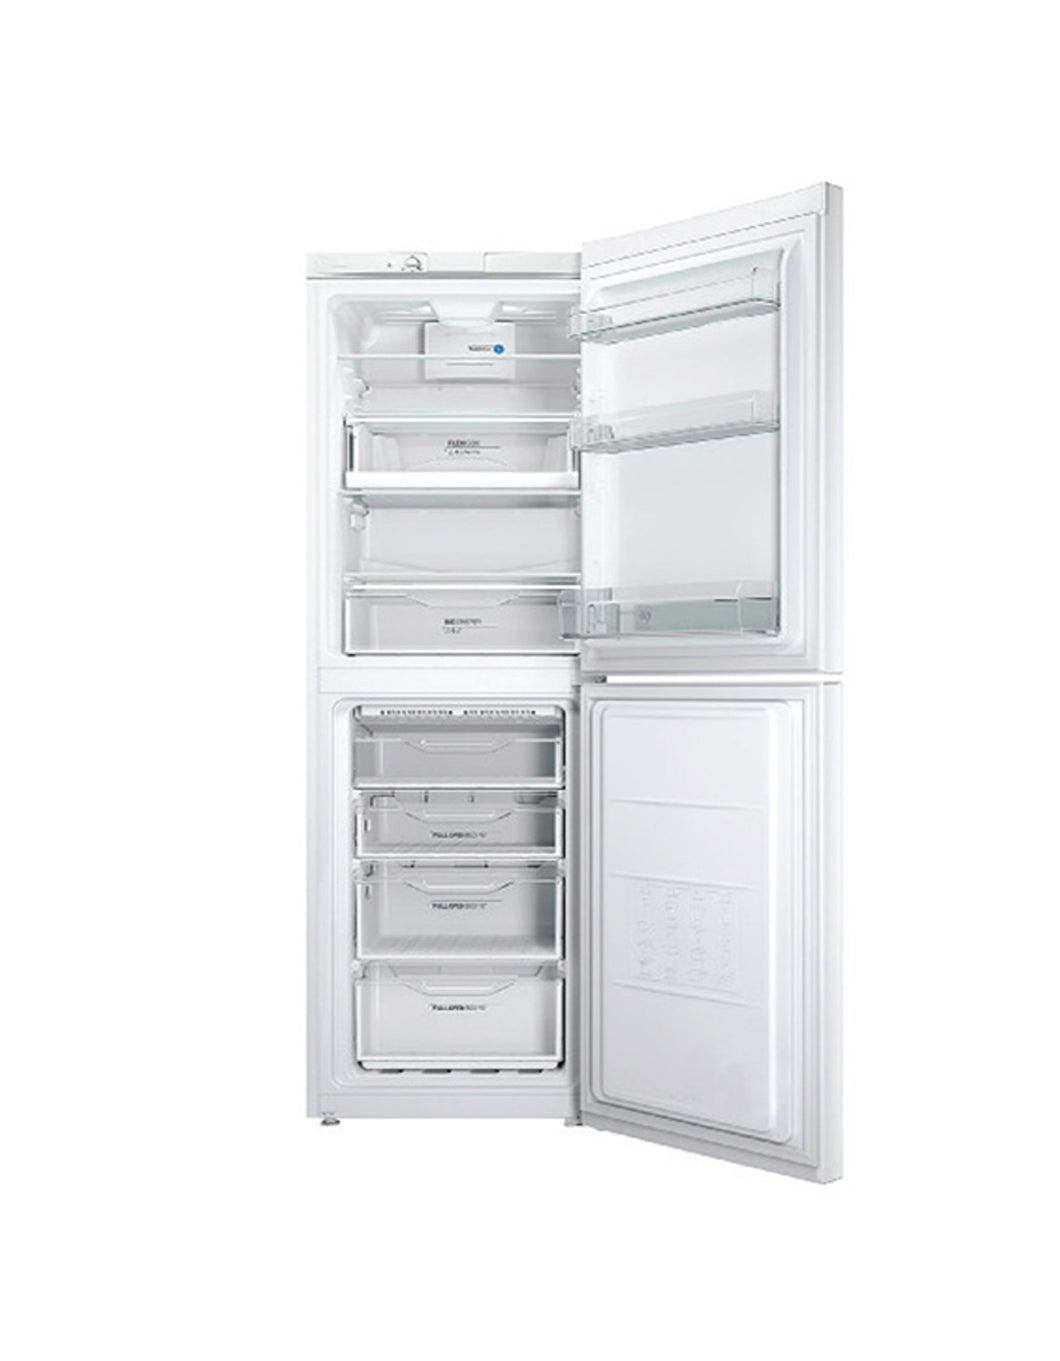 Indesit/Hotpoint Tall Fridge Freezer - Property Letting Furniture